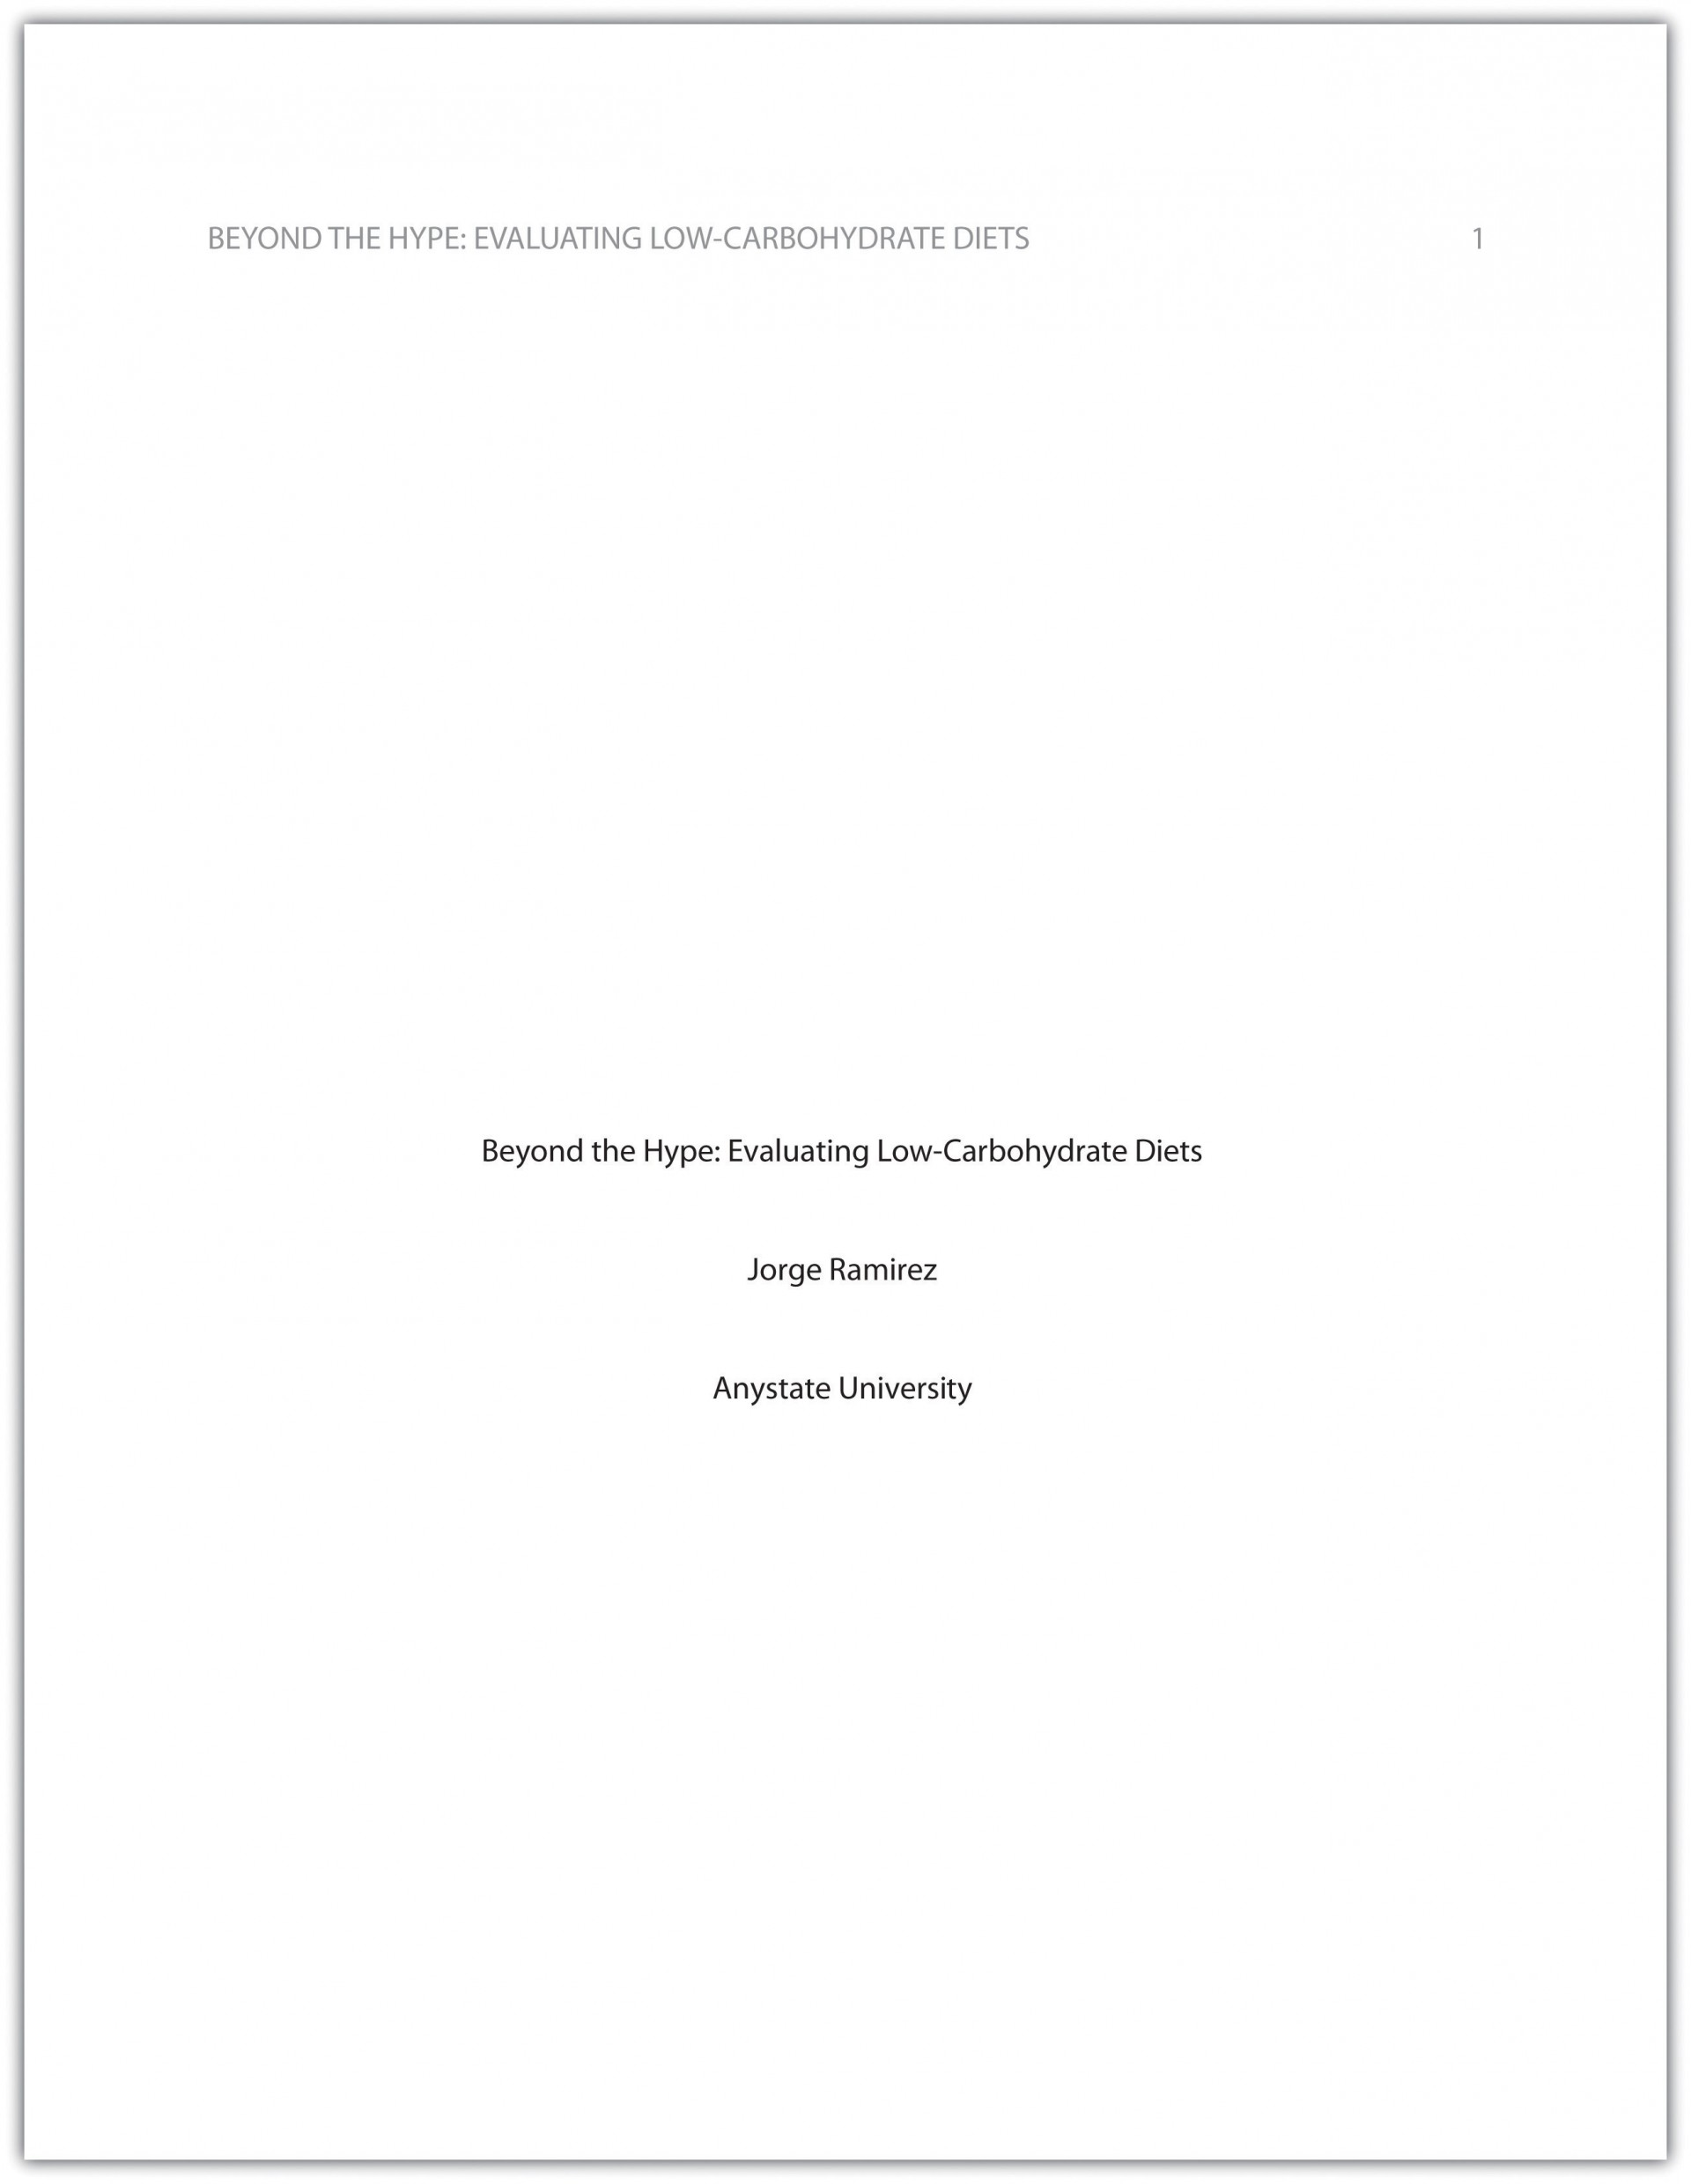 005 Format Of Research Paper Cover Page Marvelous Mla Style Title Example With First 1920